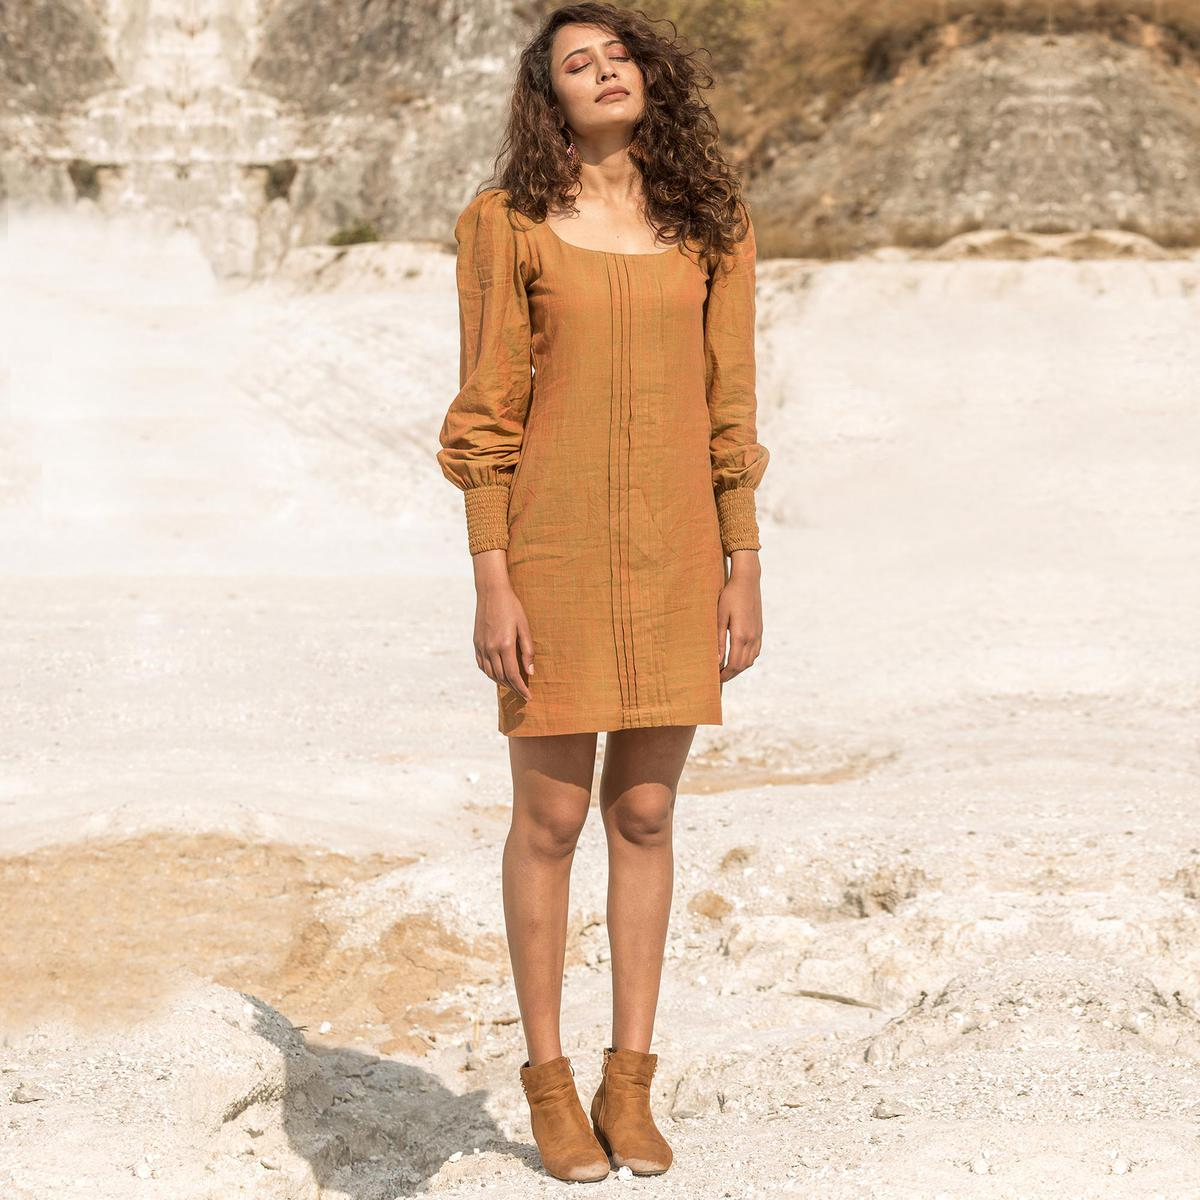 Flattering Rust Orange Colored Casual Wear Low Neckline Front Pleated Hand Woven Cotton Boxy Tunic